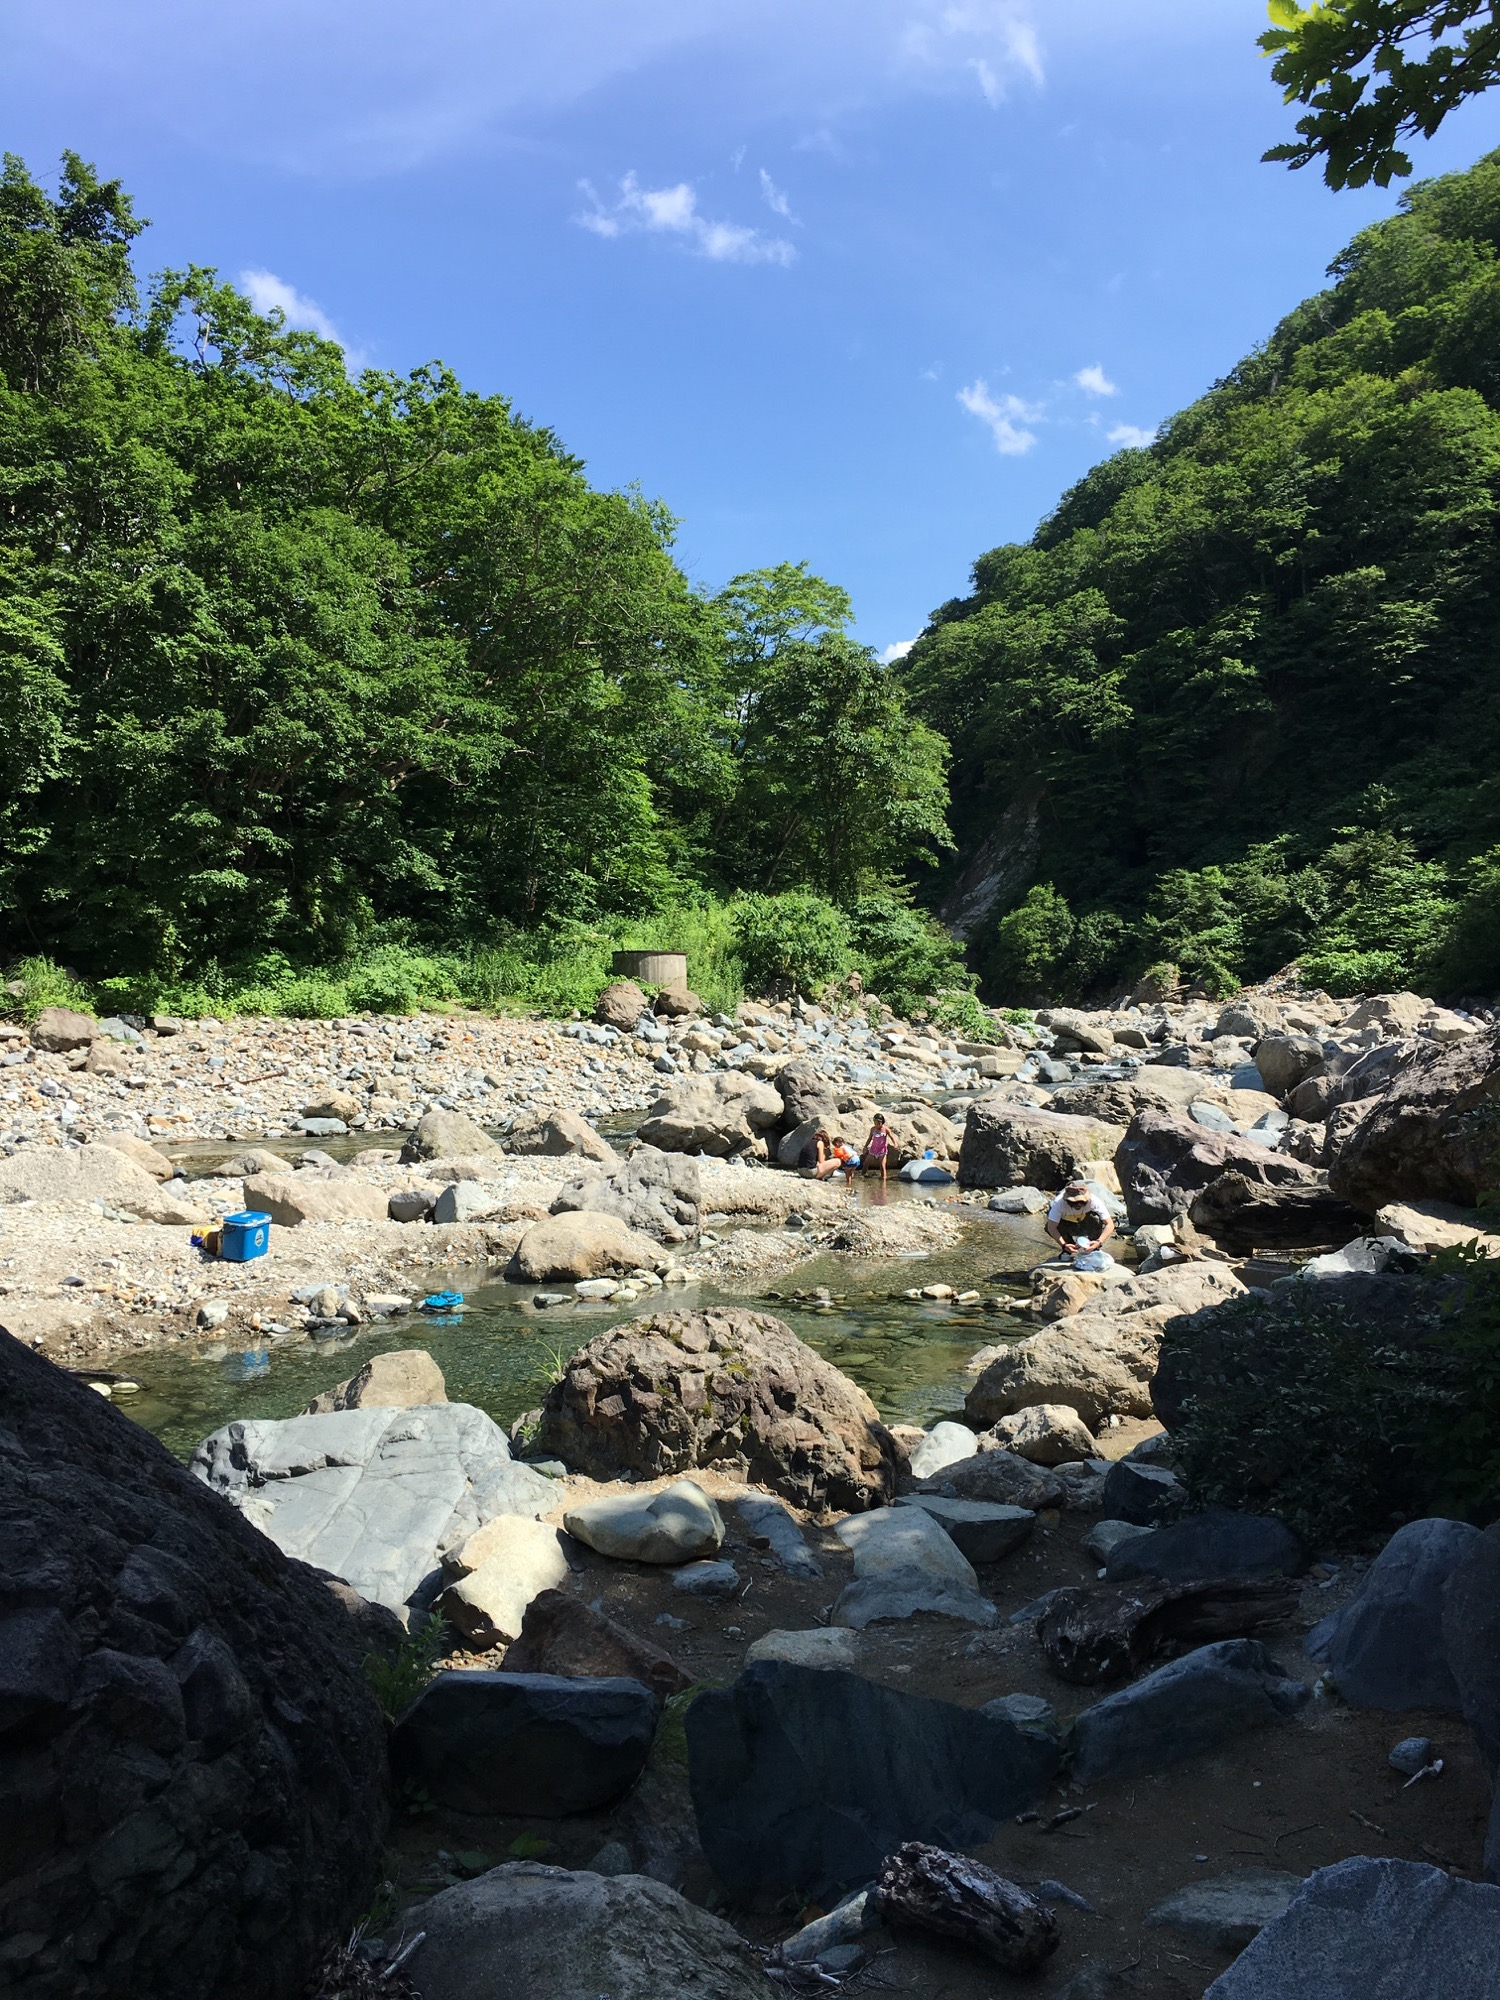 A mid river outdoor onsen